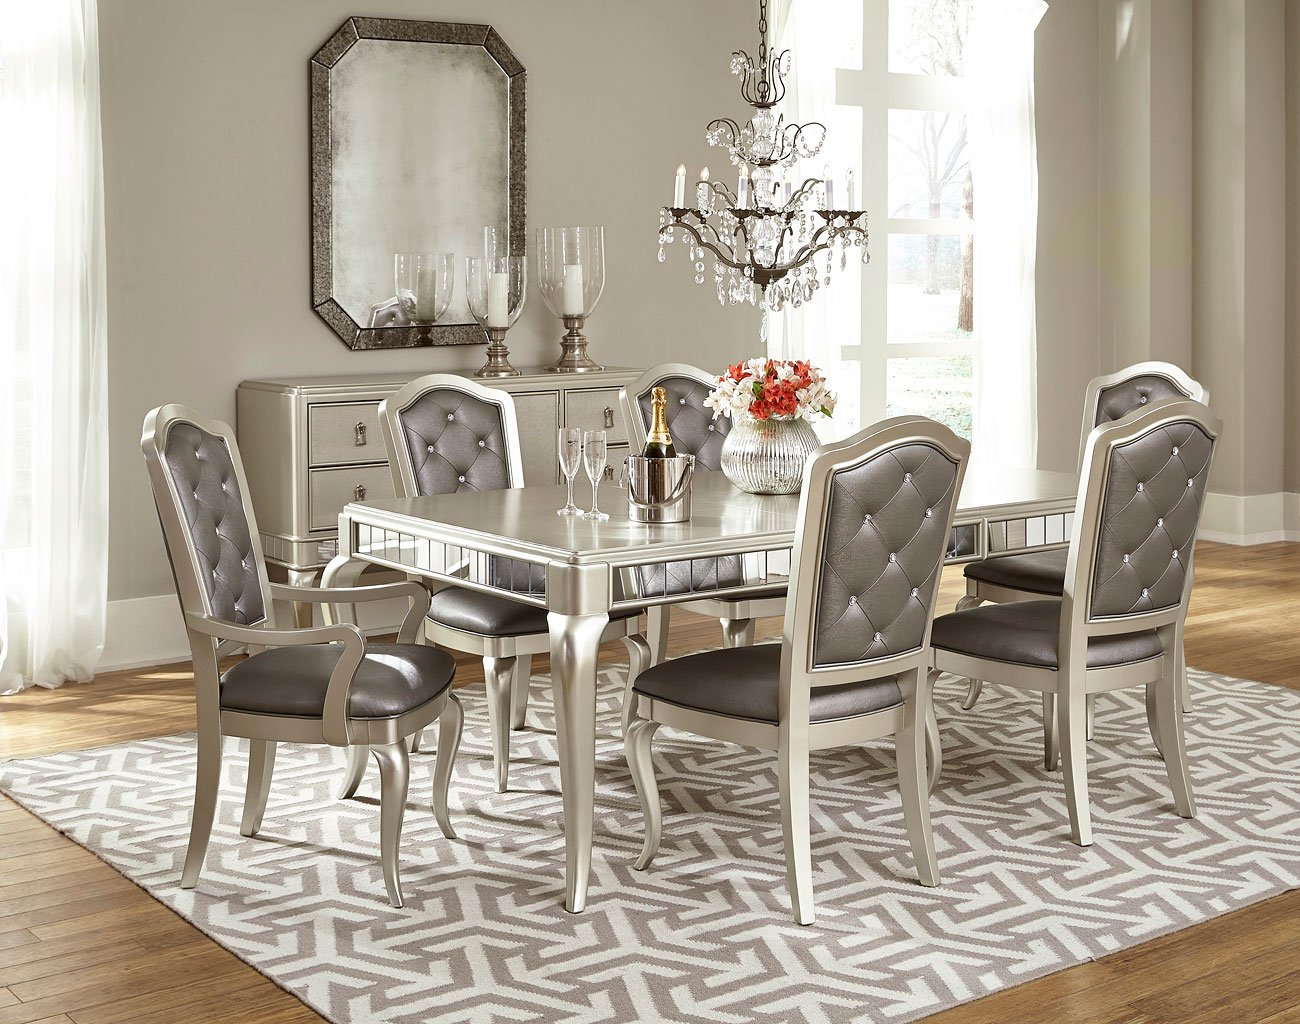 Diva Dining Room Set Samuel Lawrence Furniture, 1 Reviews